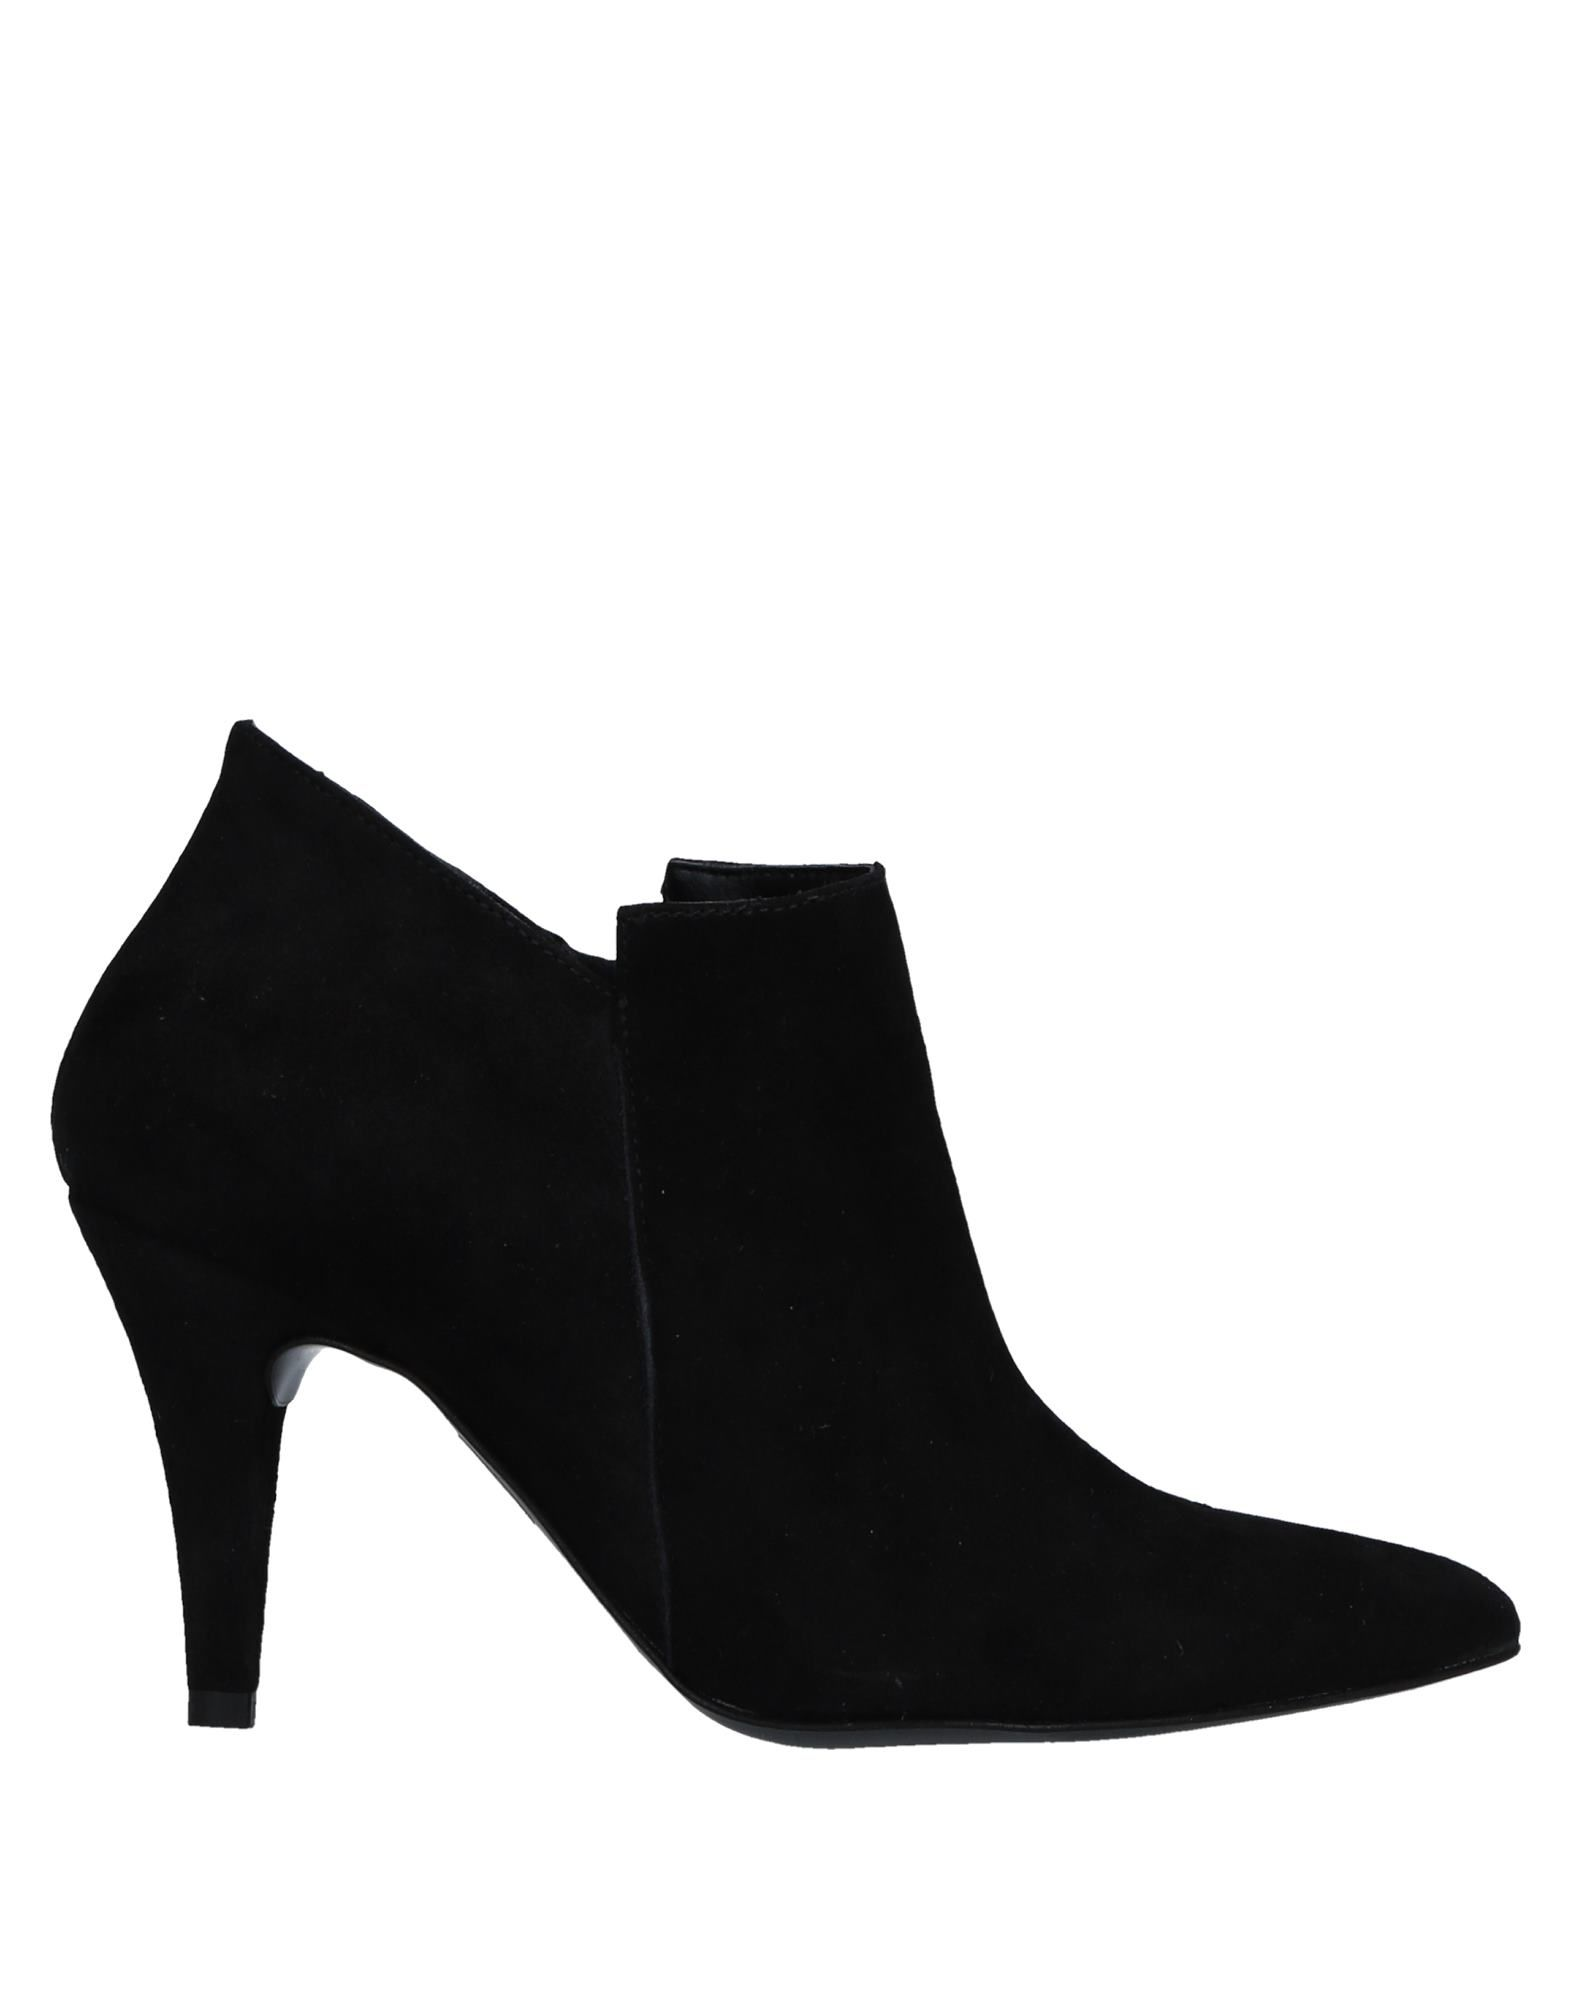 Bottine Bagatt Femme - Bottines Bagatt Noir Confortable et belle